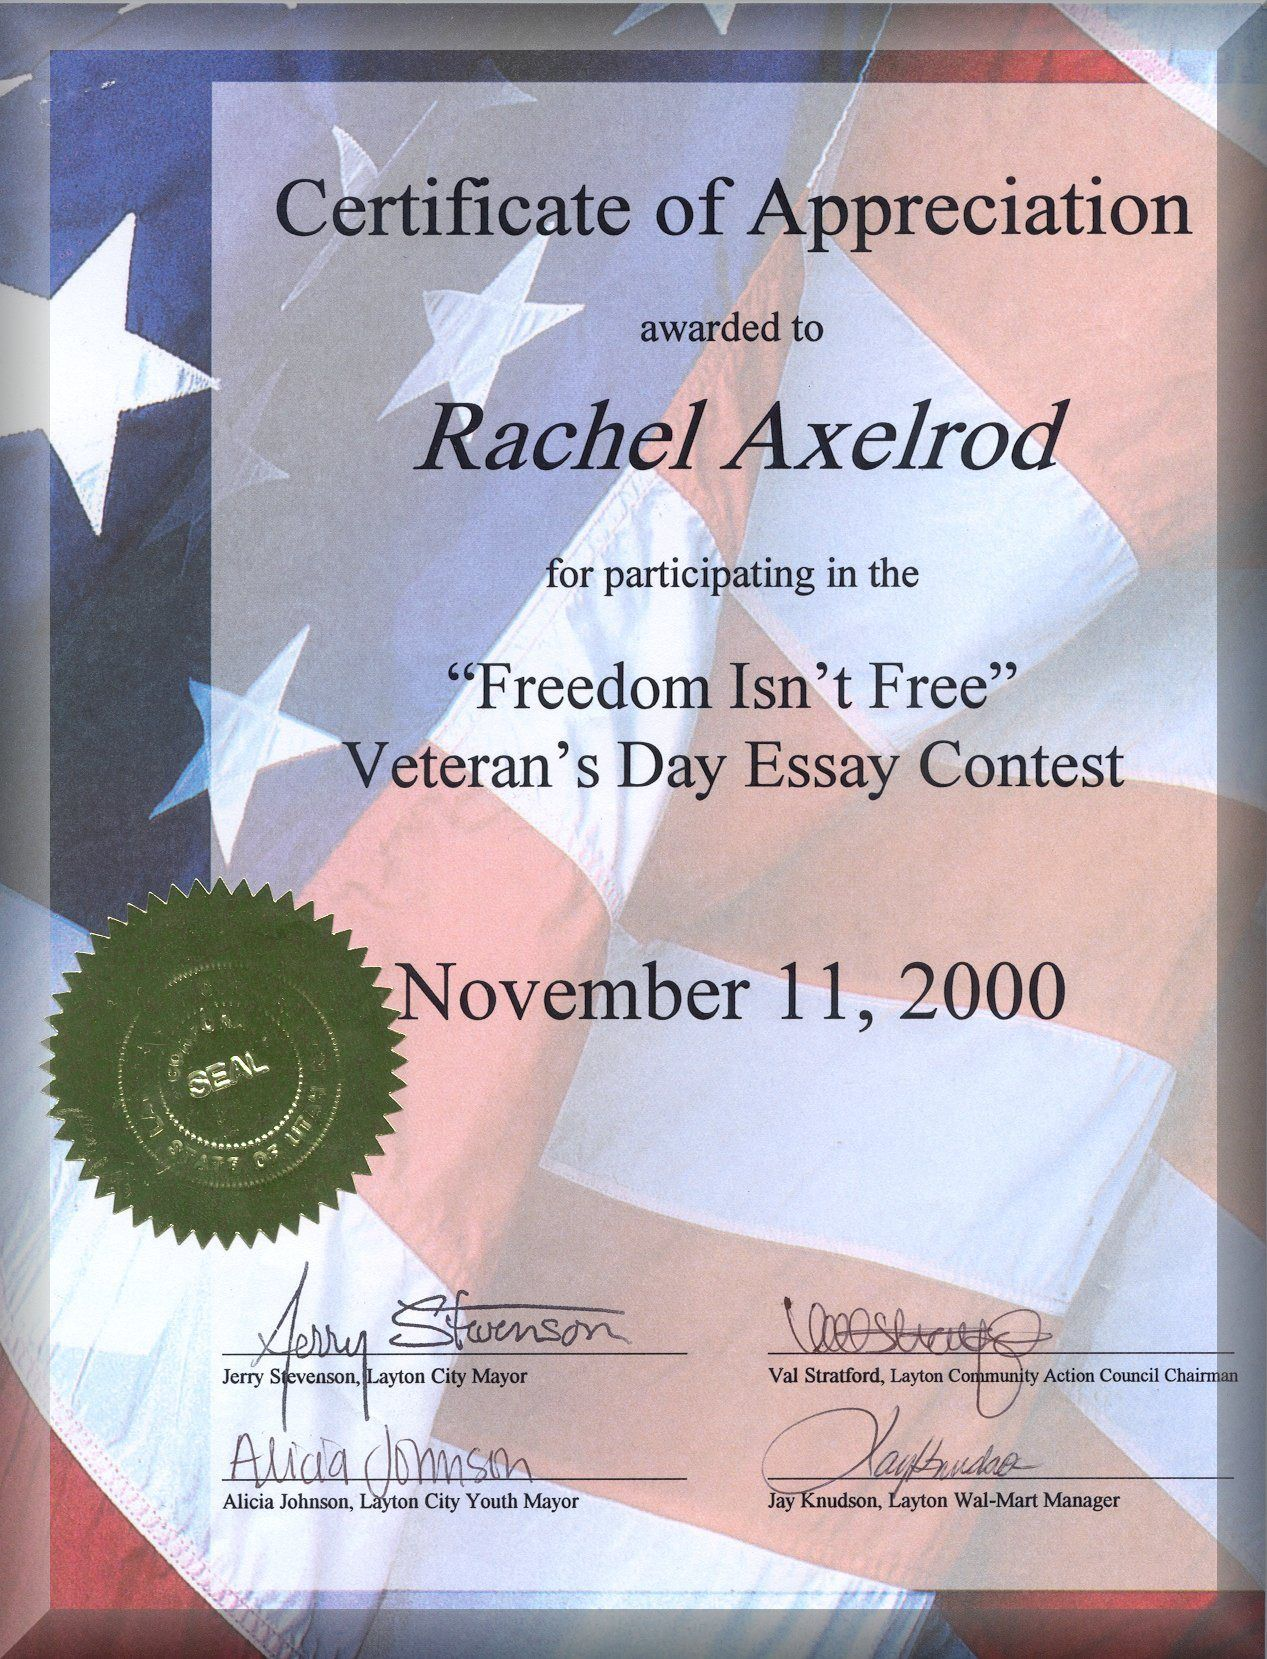 Veteran certificate of appreciation printable related pictures veteran certificate of appreciation printable related pictures award free award certificate templates pictures yadclub Gallery